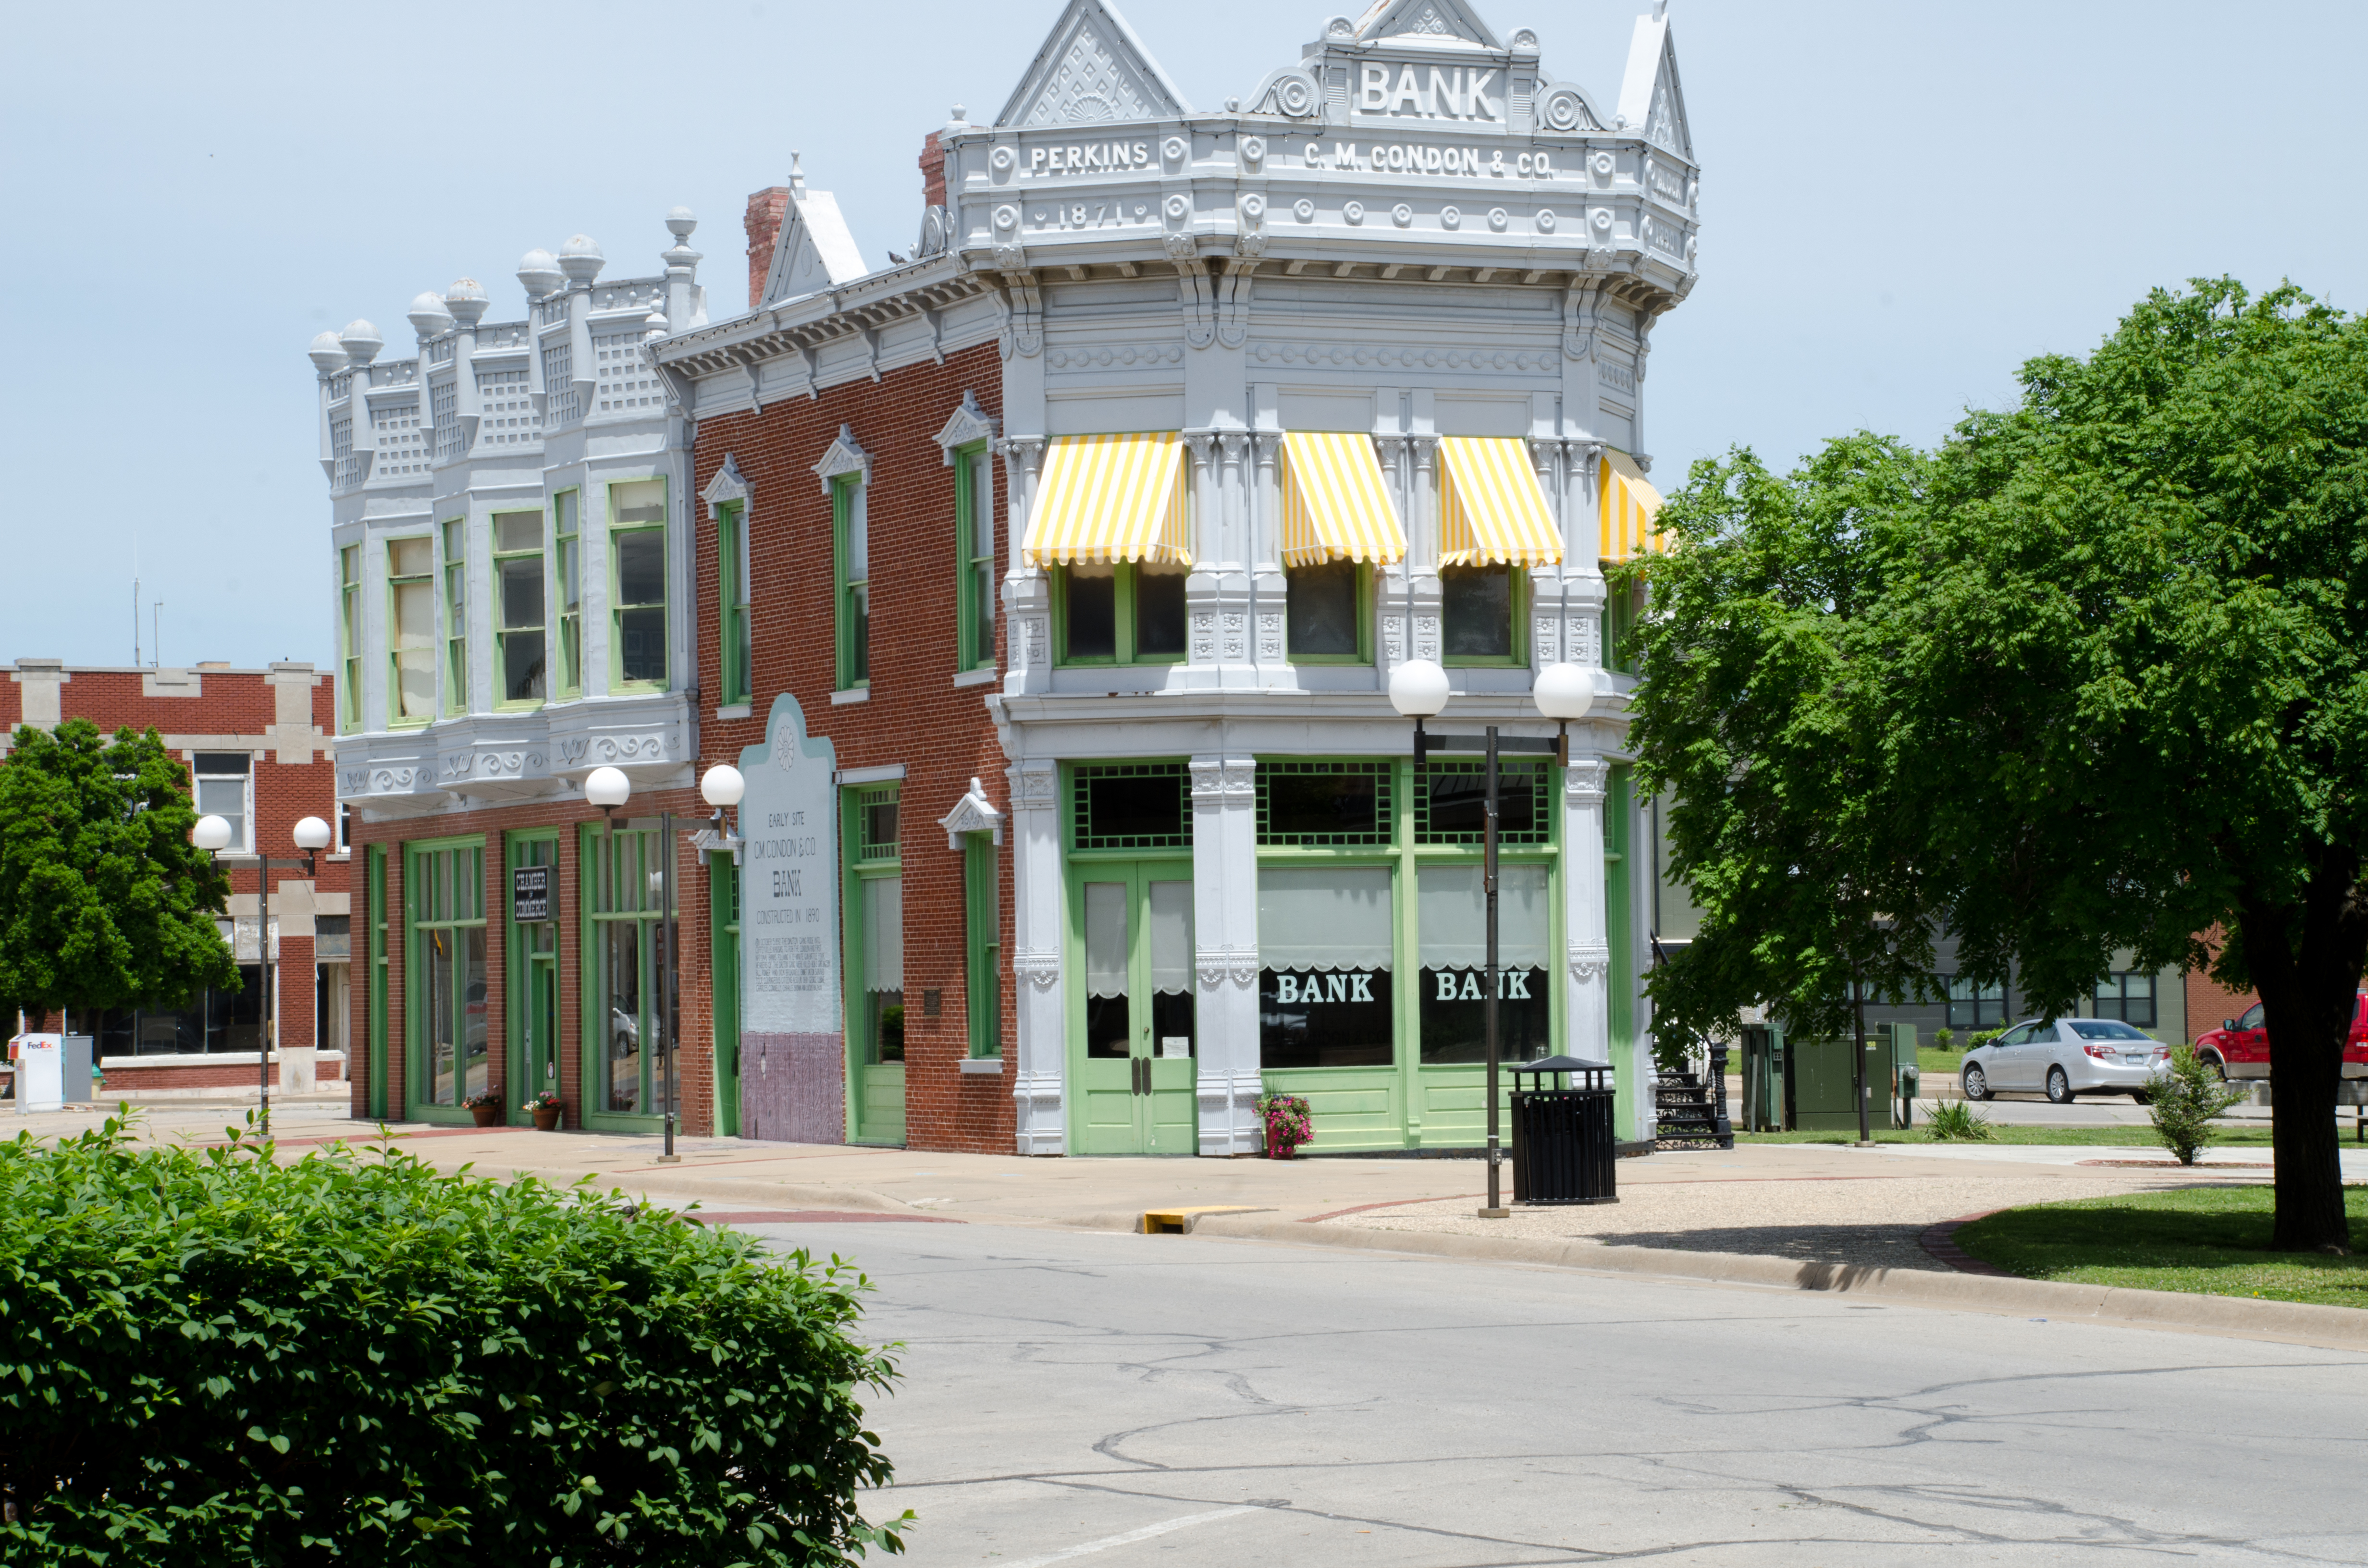 May 12, 2015 Trip to Coffeyville, KS